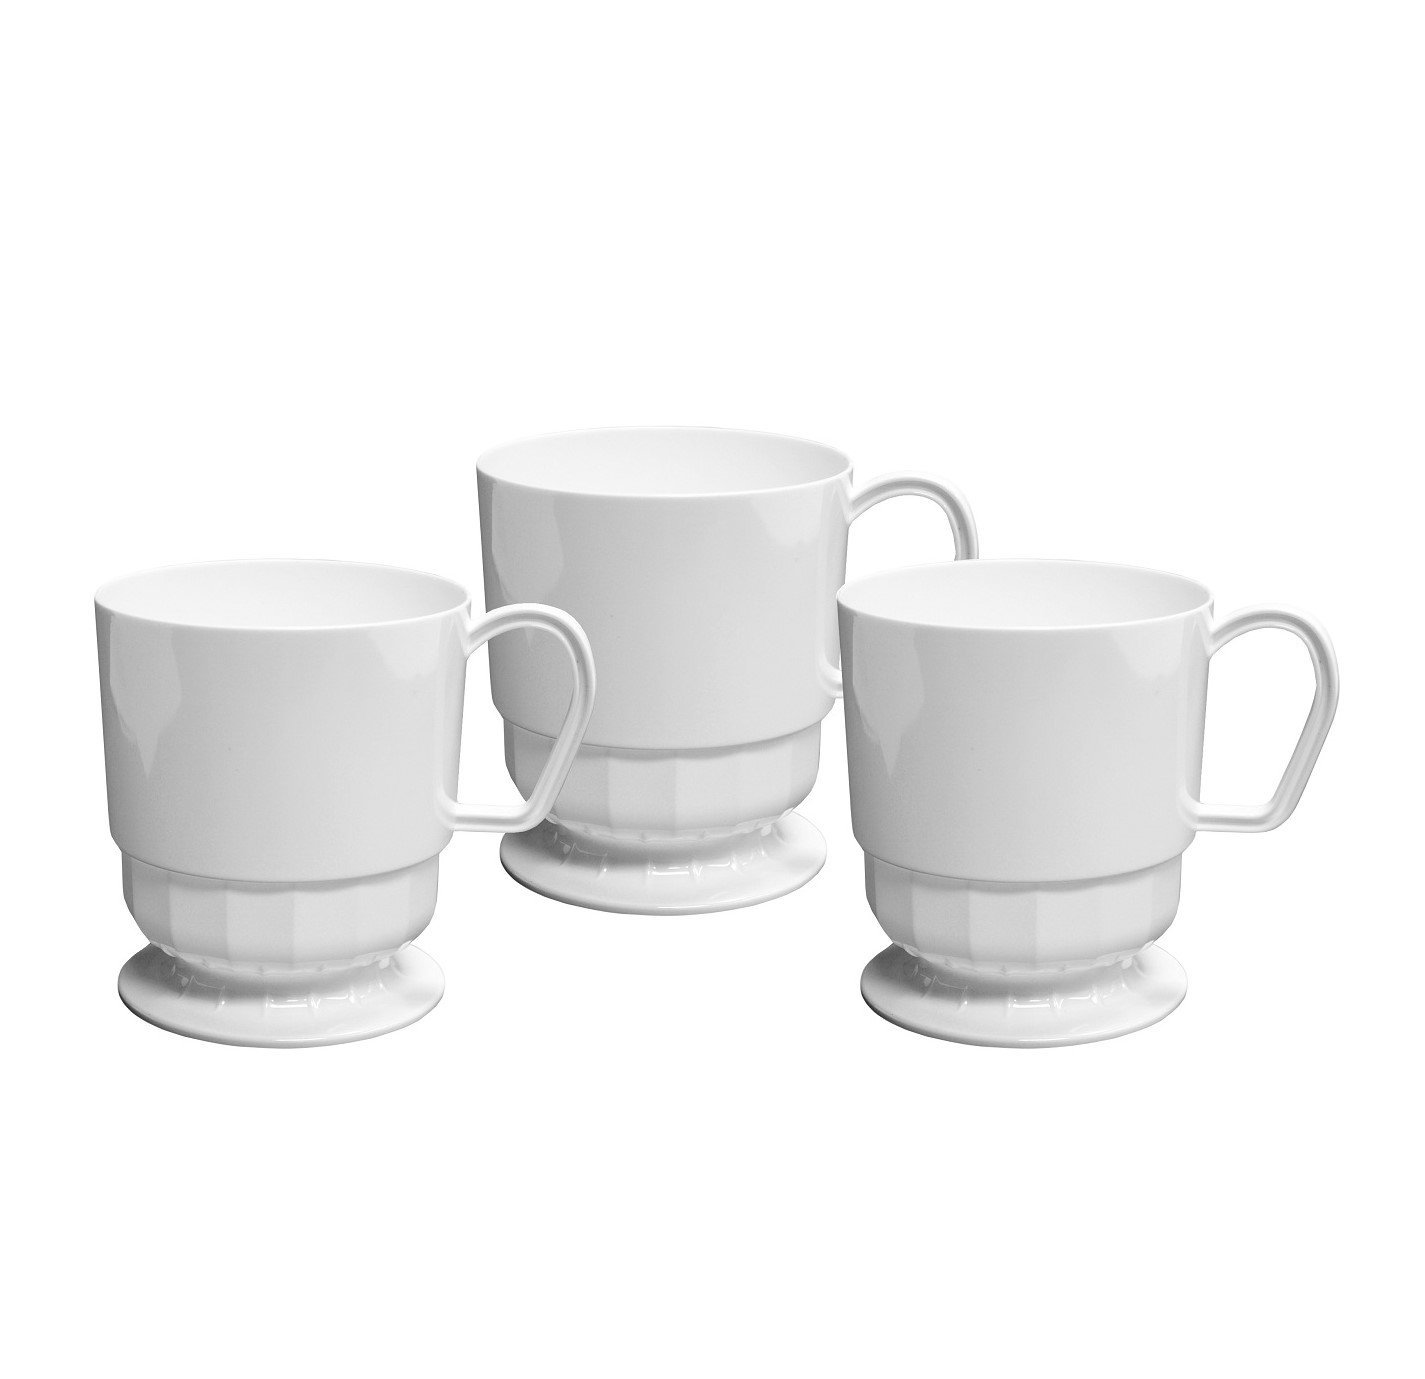 Party Essentials Deluxe/Elegance Hard Plastic 8-Ounce Coffee Cups, 40-Count, White